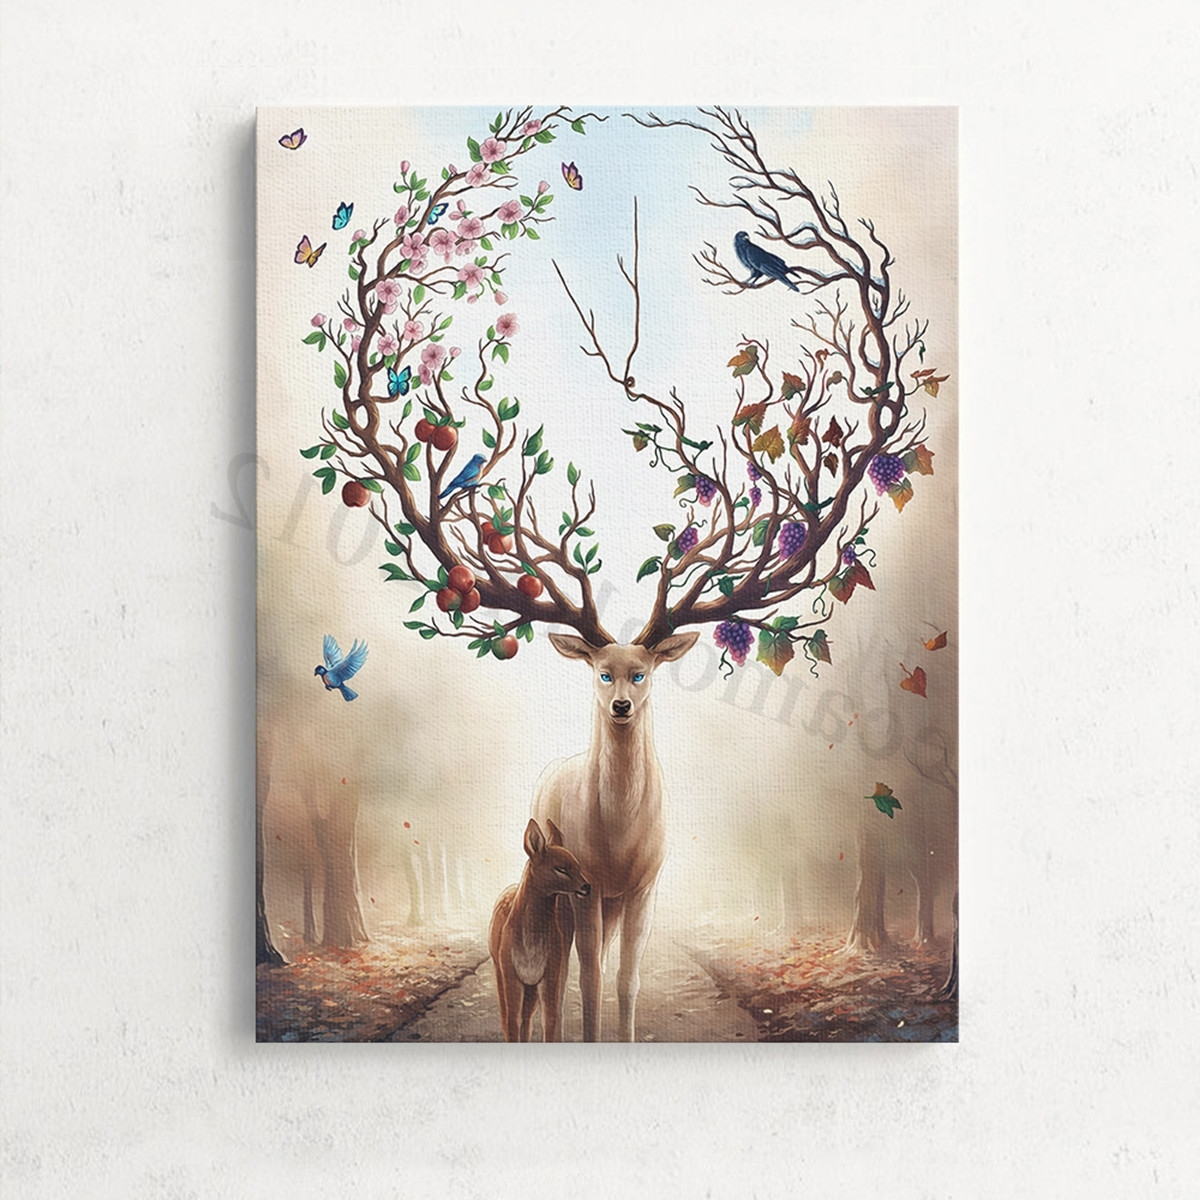 Unframed Canvas Print Deer Design Modern Home Decor Wall Art With Regard To 2017 Home Decor Wall Art (View 9 of 20)